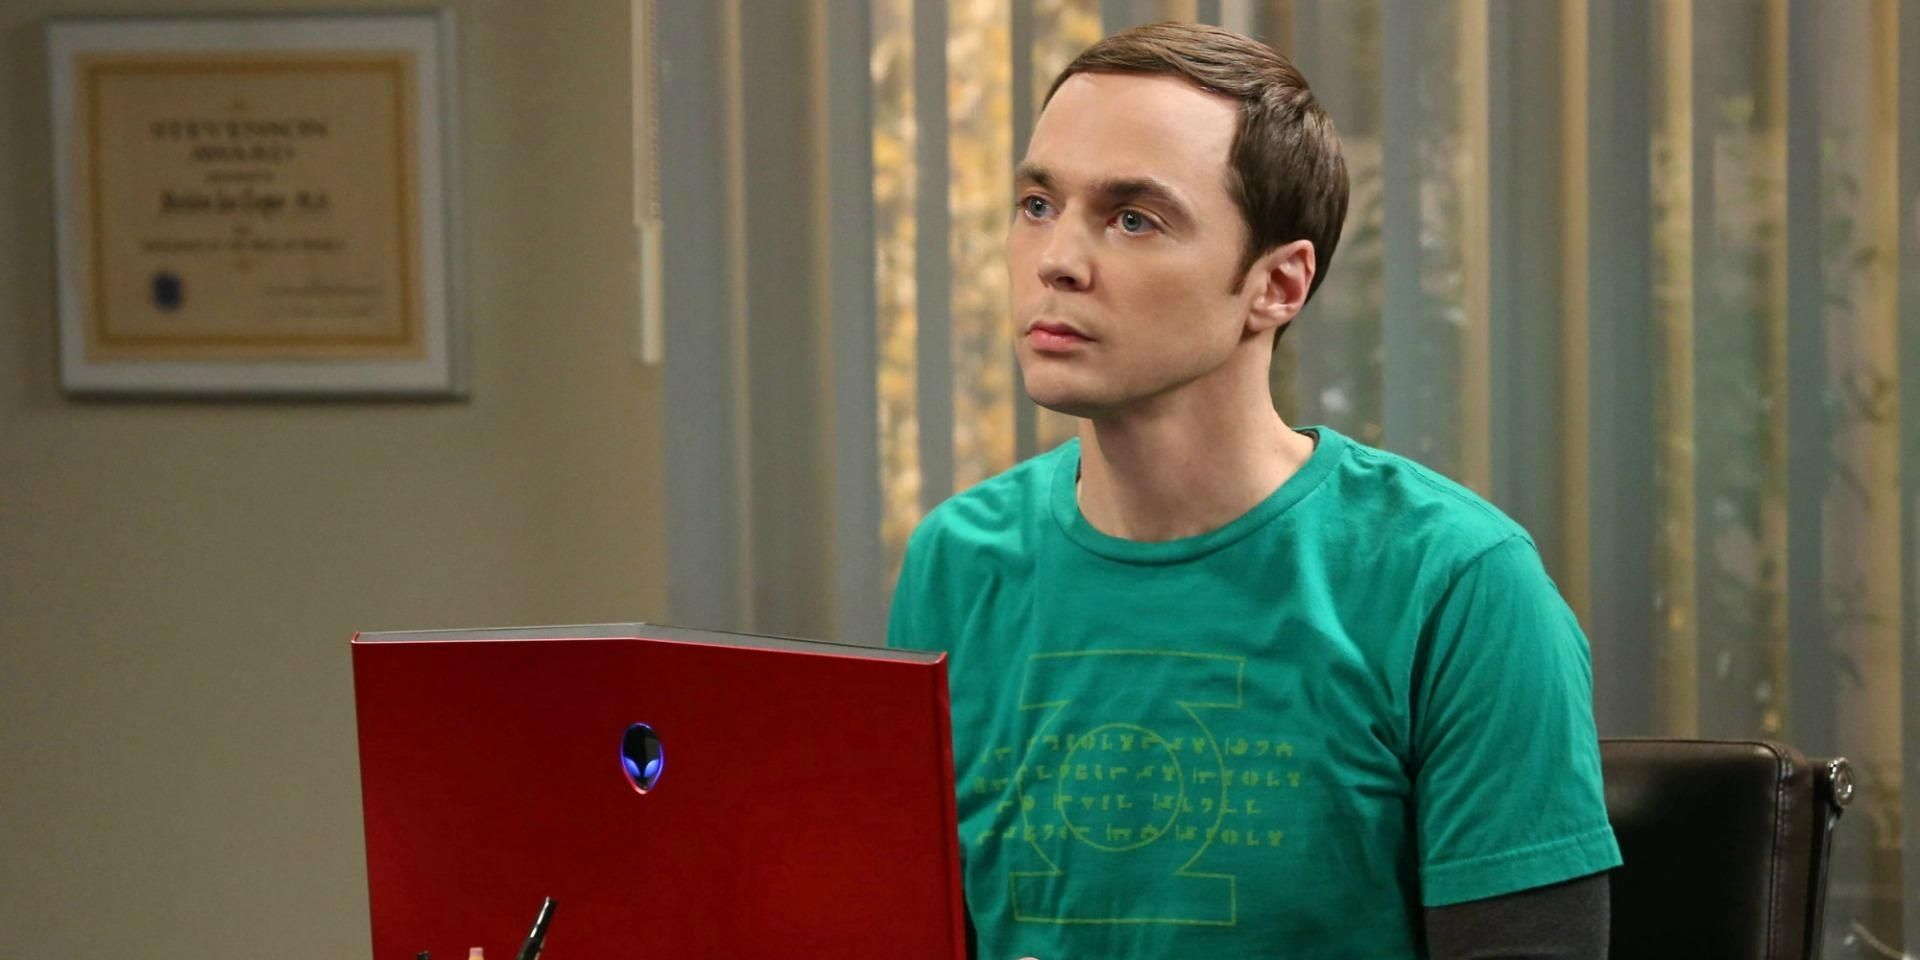 The Big Bang Theory: What Your Favorite Character Says About You